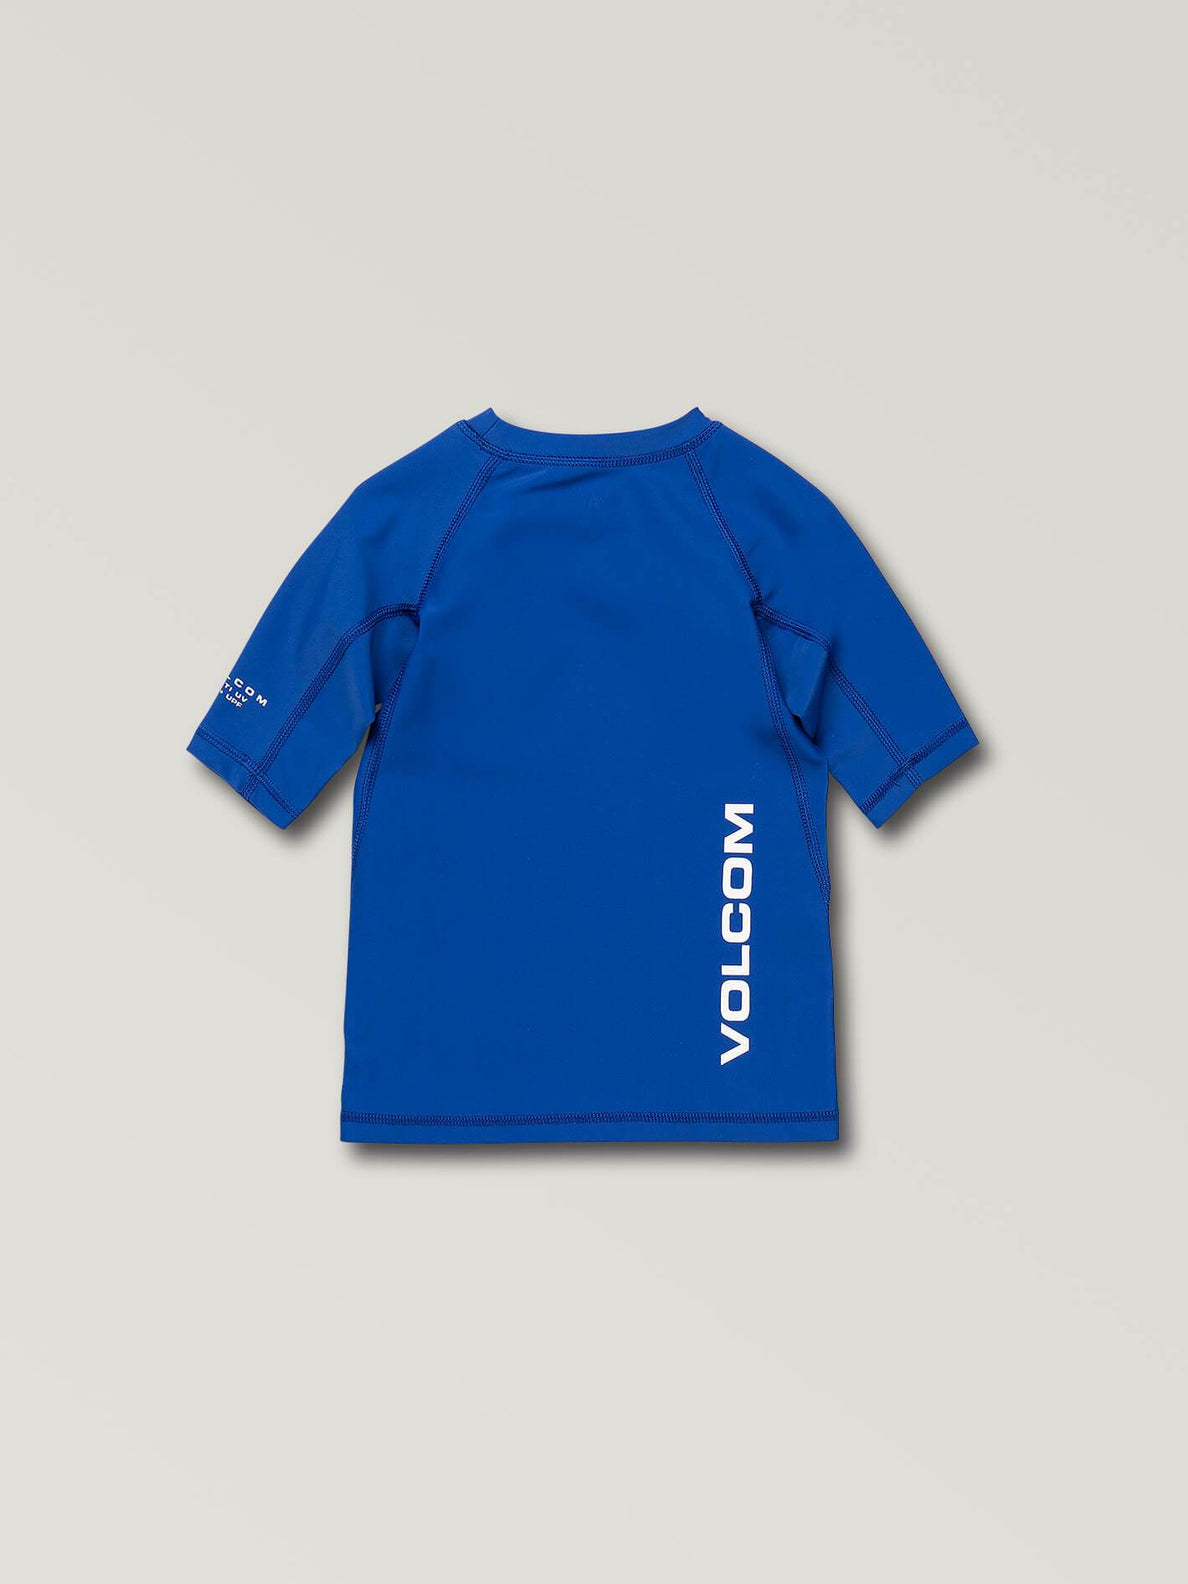 Little Boys Lido Solid Short Sleeve Rashguard In Snow Royal, Back View